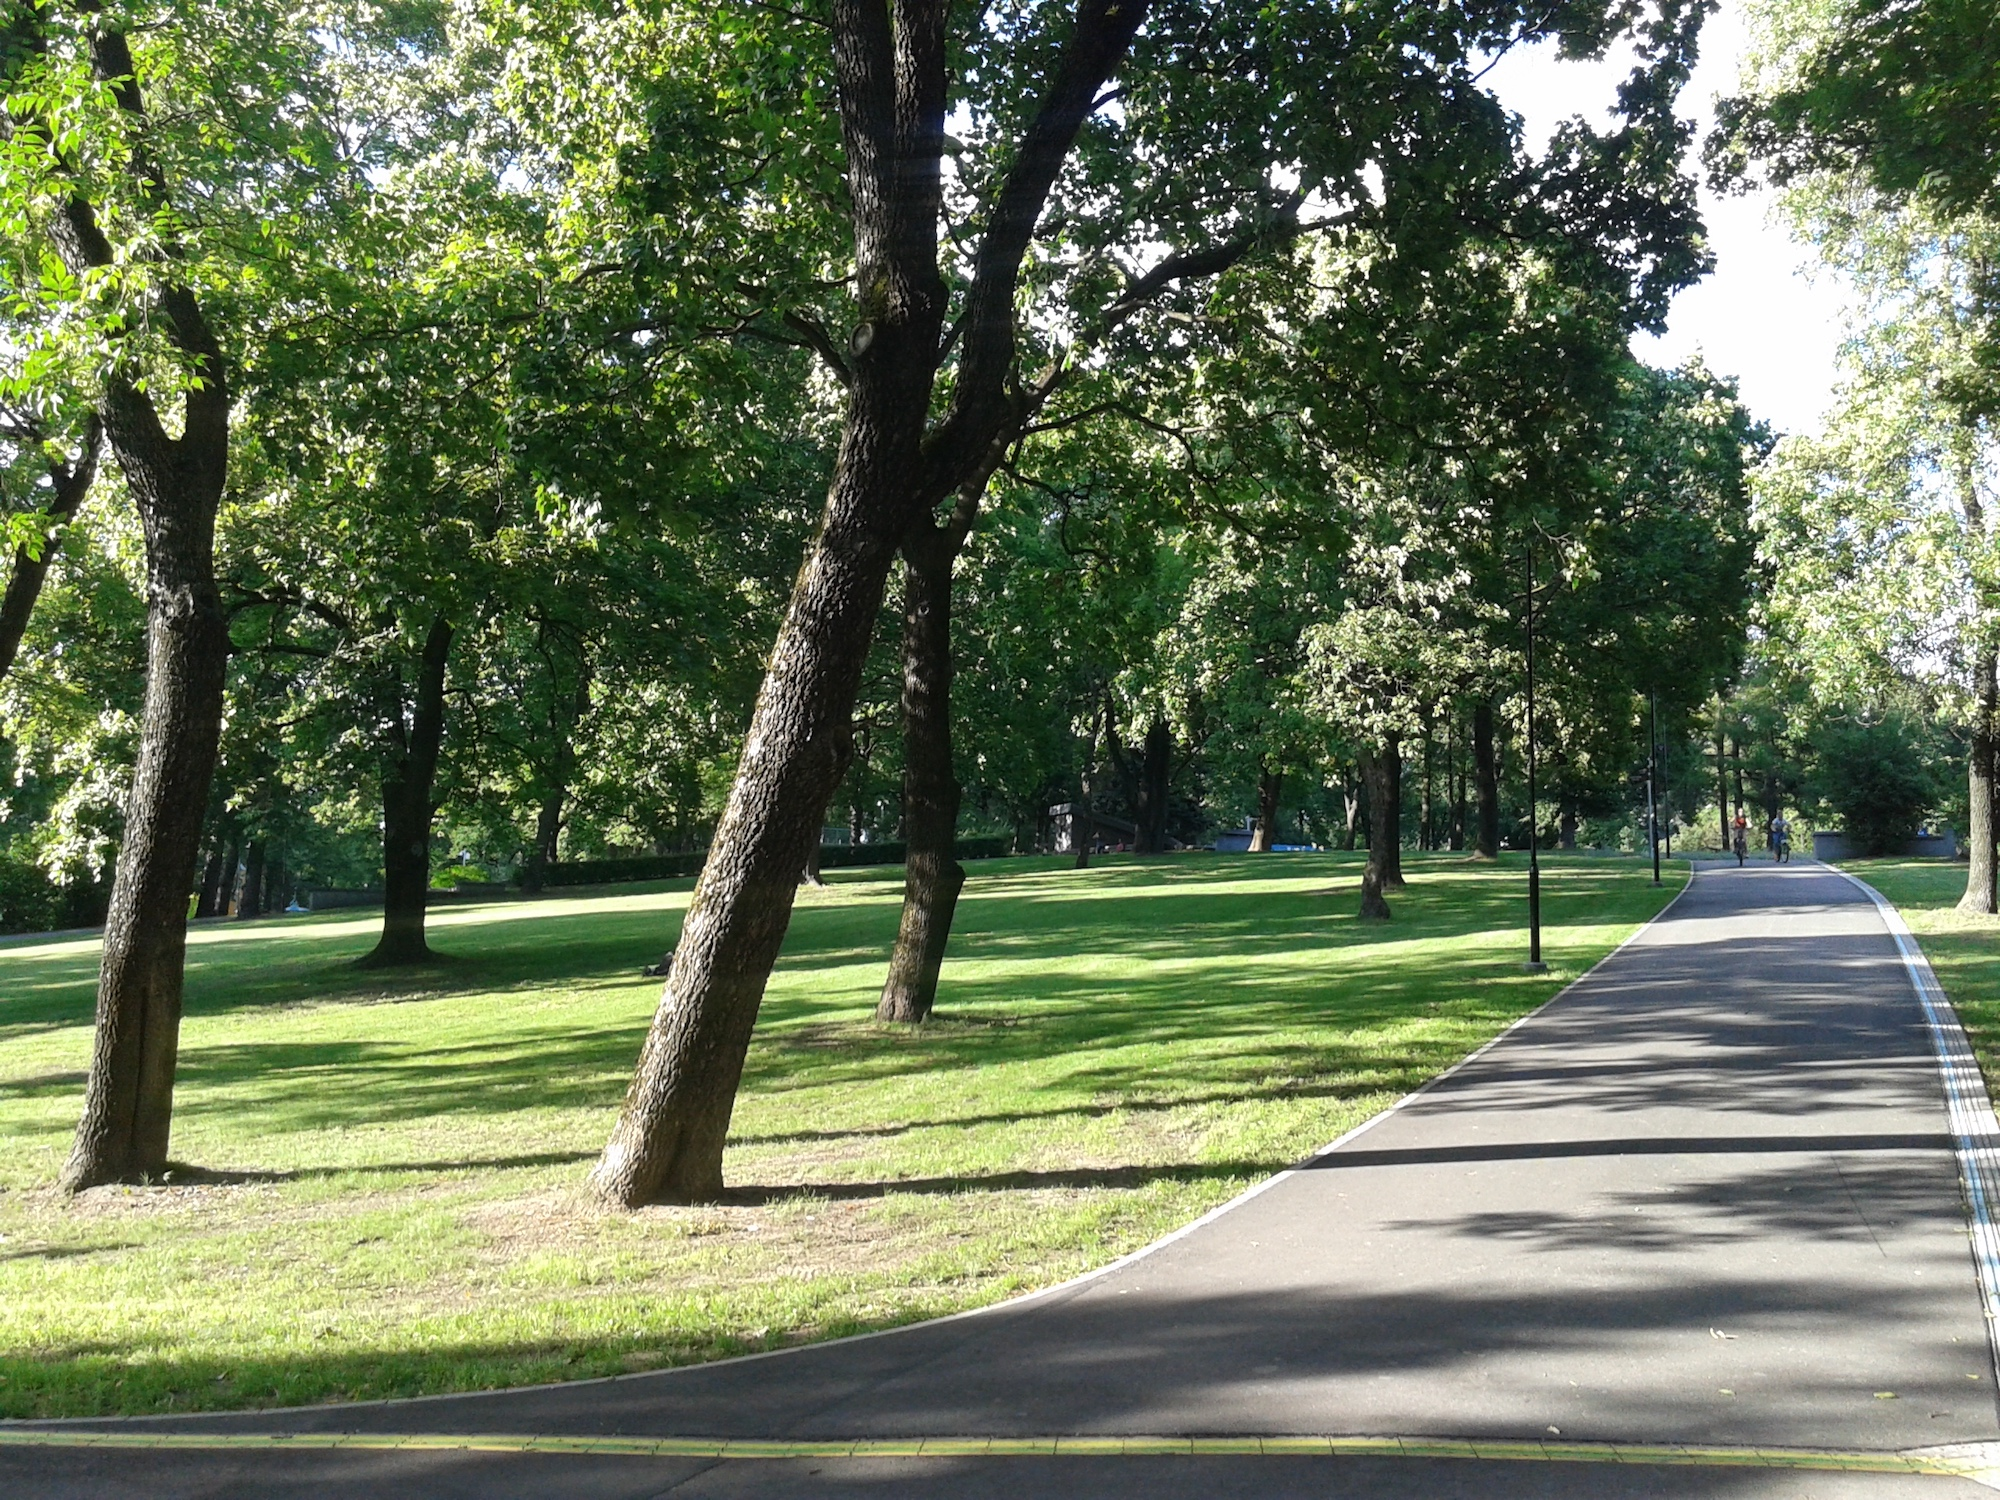 Running path in the park